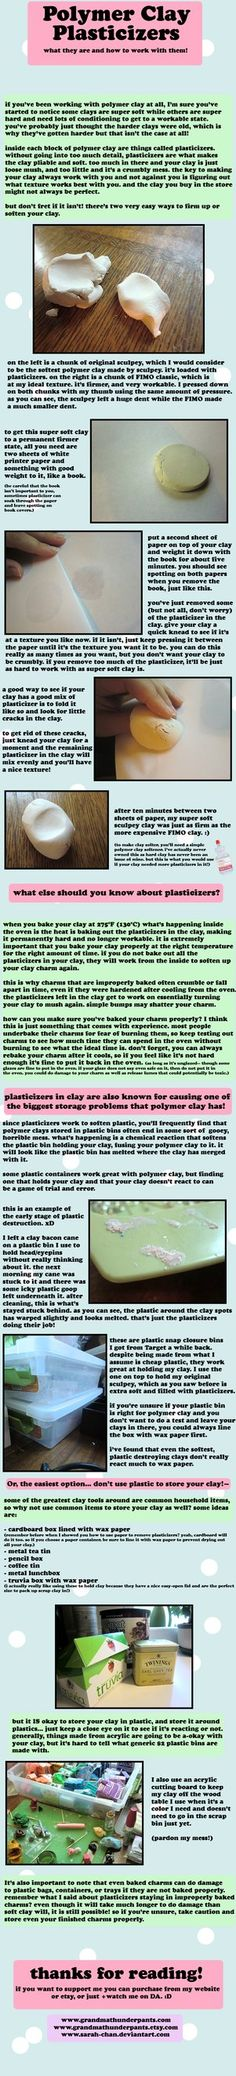 Polymer Clay Plasticizer Quick Guide by *GrandmaThunderpants on deviantART